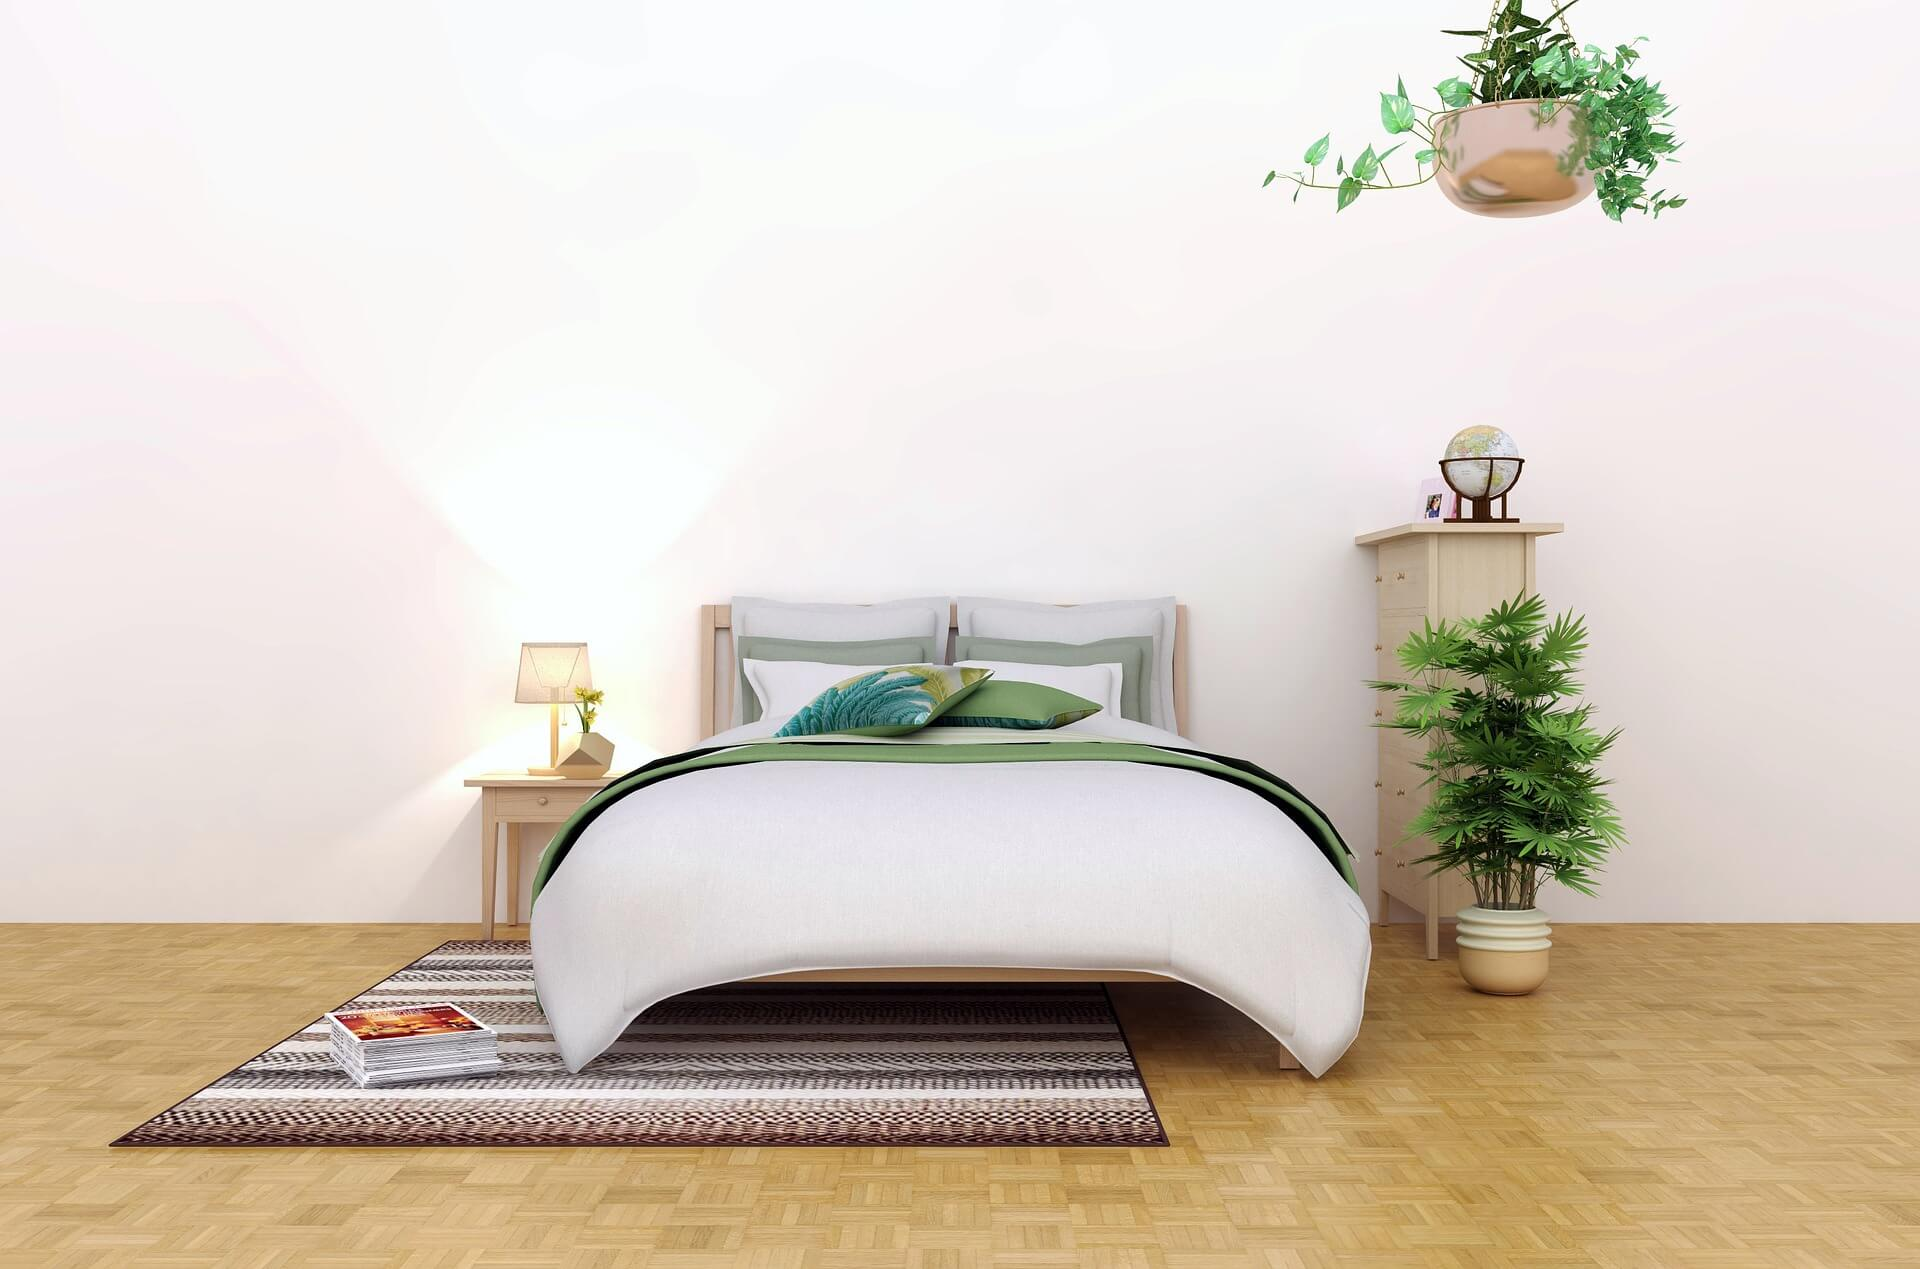 Wink & Nod and India's best memory foam mattress. It uses cool-gel infusion to be temperature adaptive and comfortable.